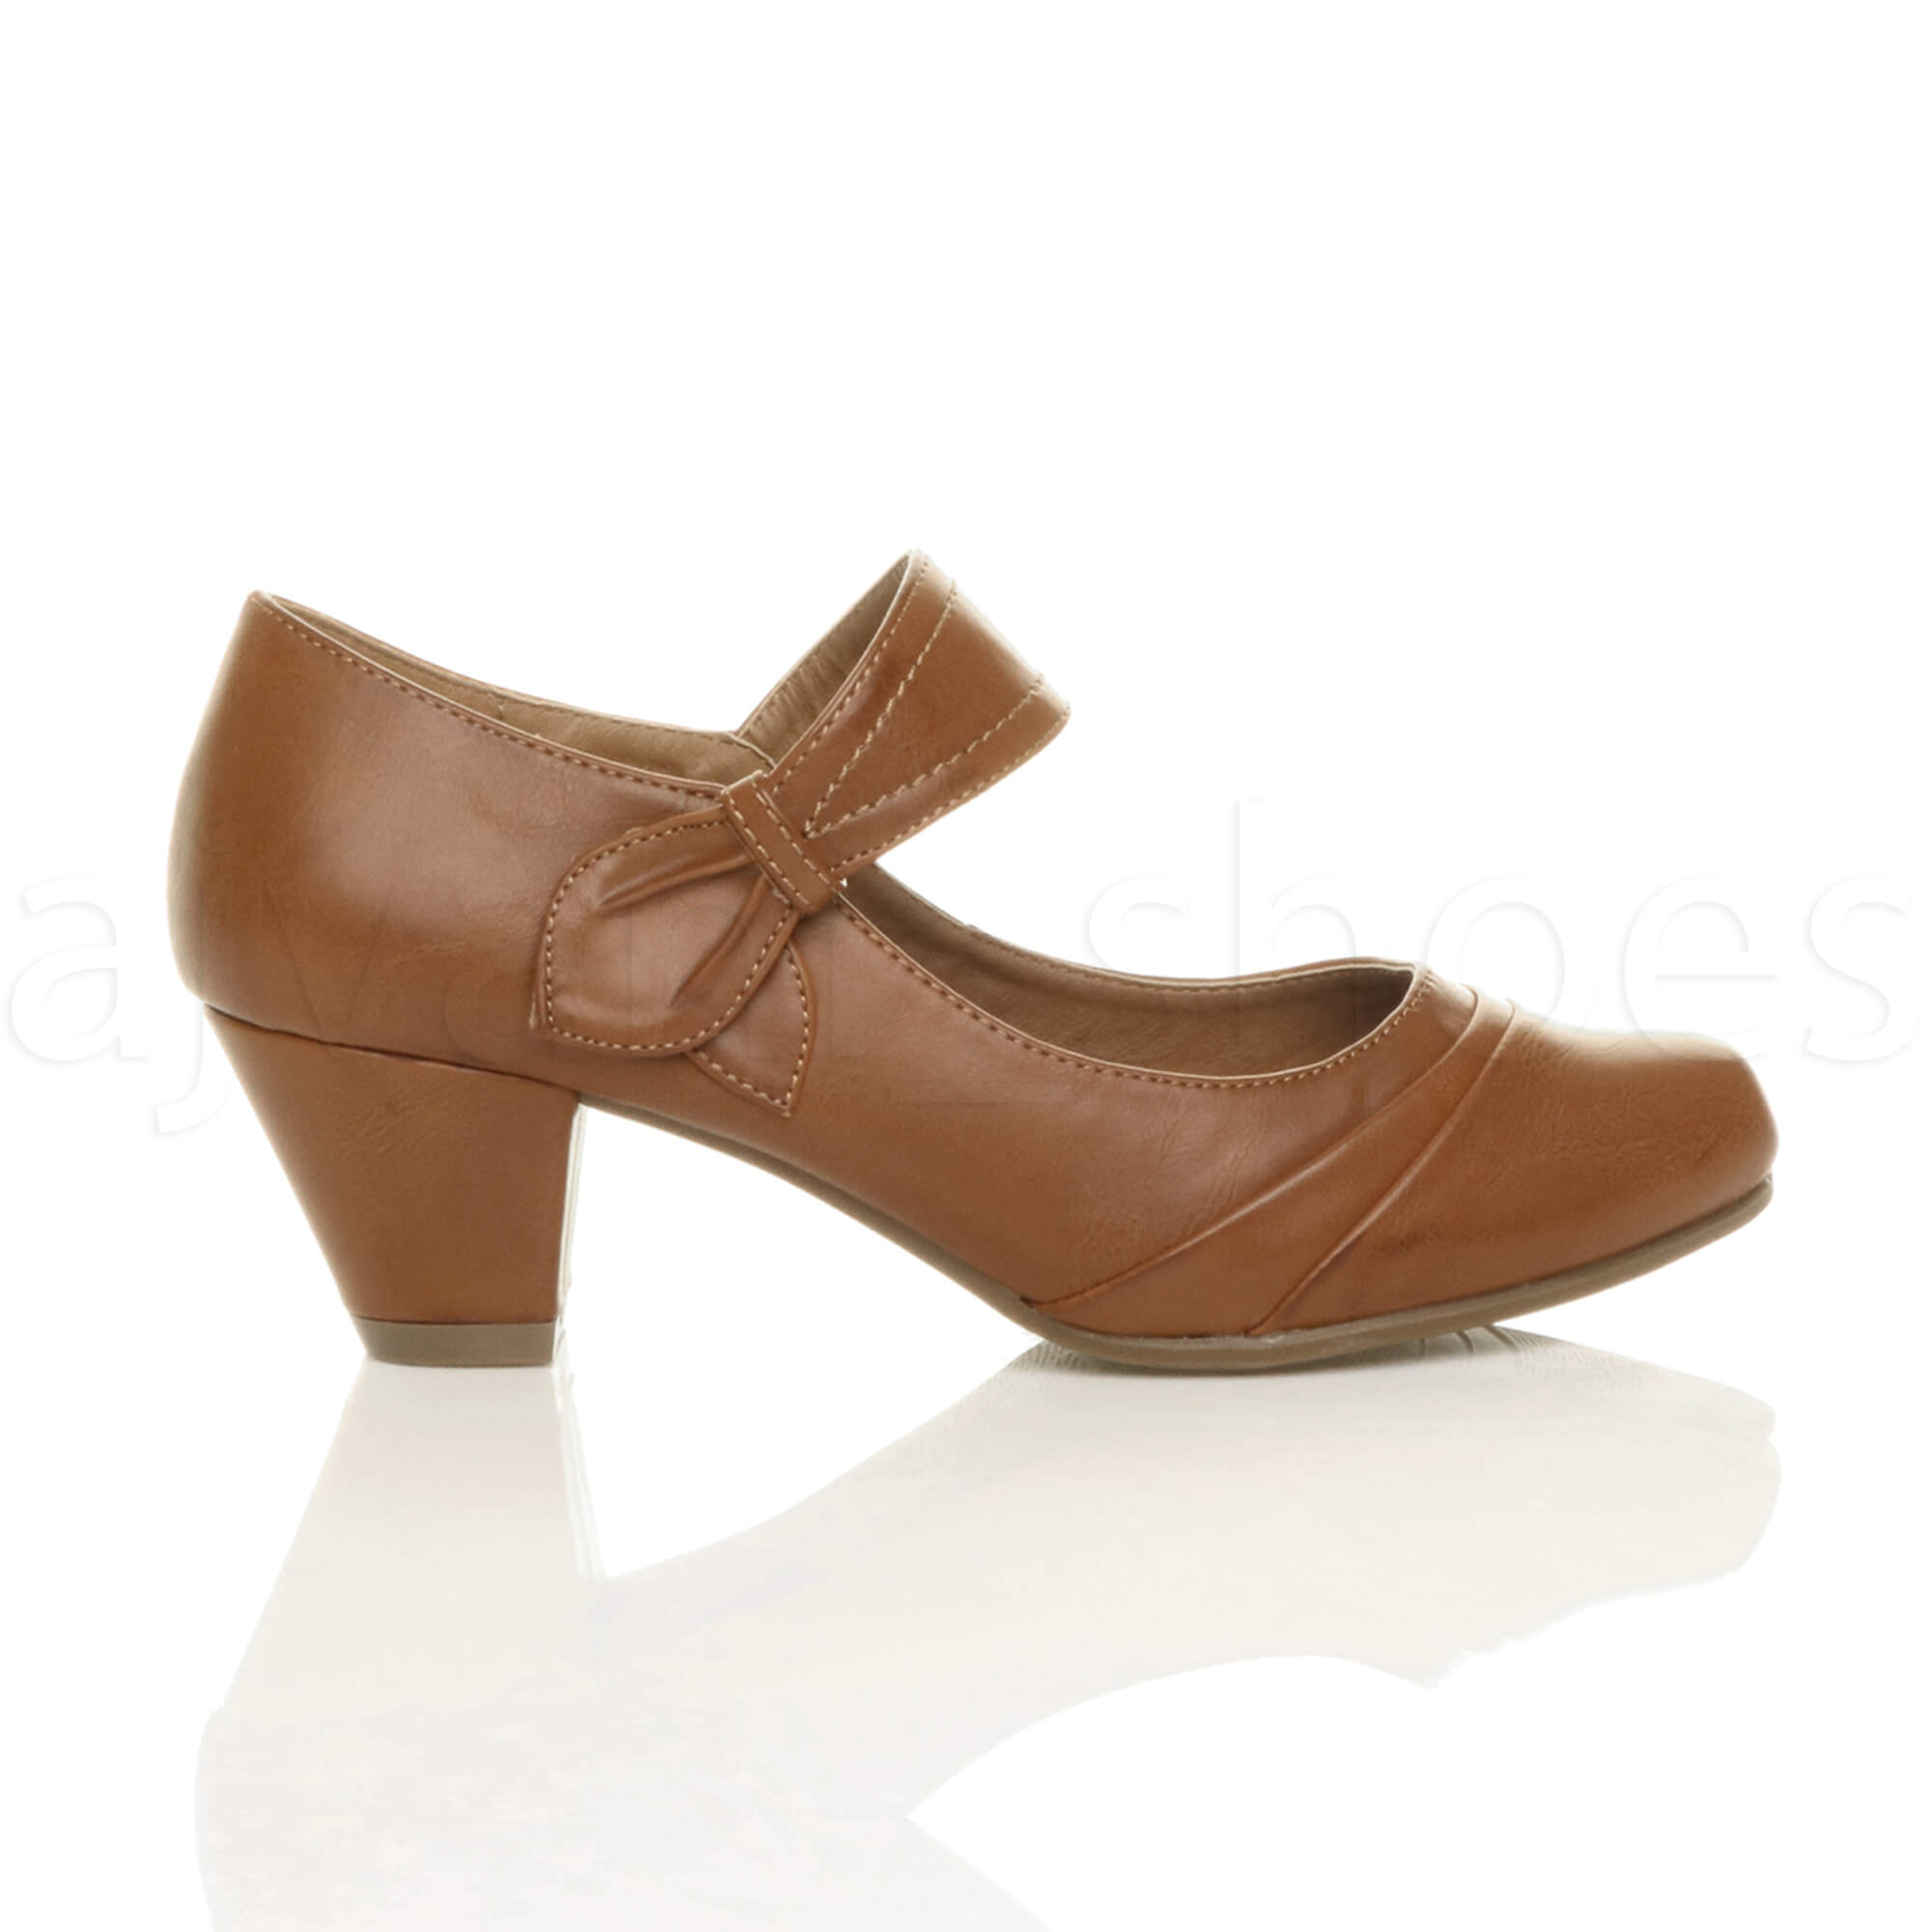 WOMENS LADIES MID HEEL MARY JANE STRAP SMART WORK COMFORT COURT SHOES SIZE